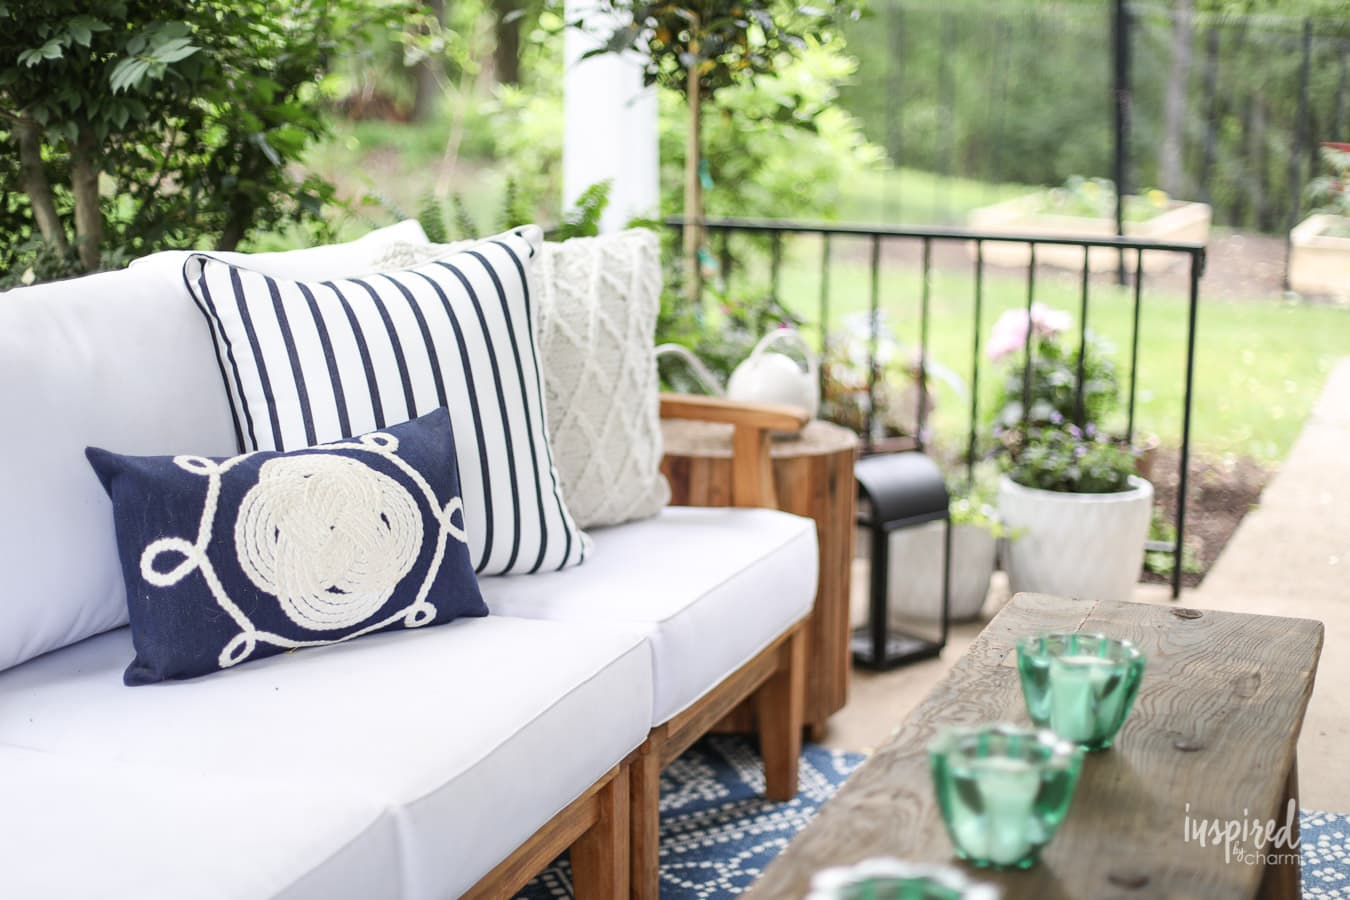 Summer Decorating: Porch and Patio Ideas + VIDEO for ... on Backyard Garden Decor id=28398